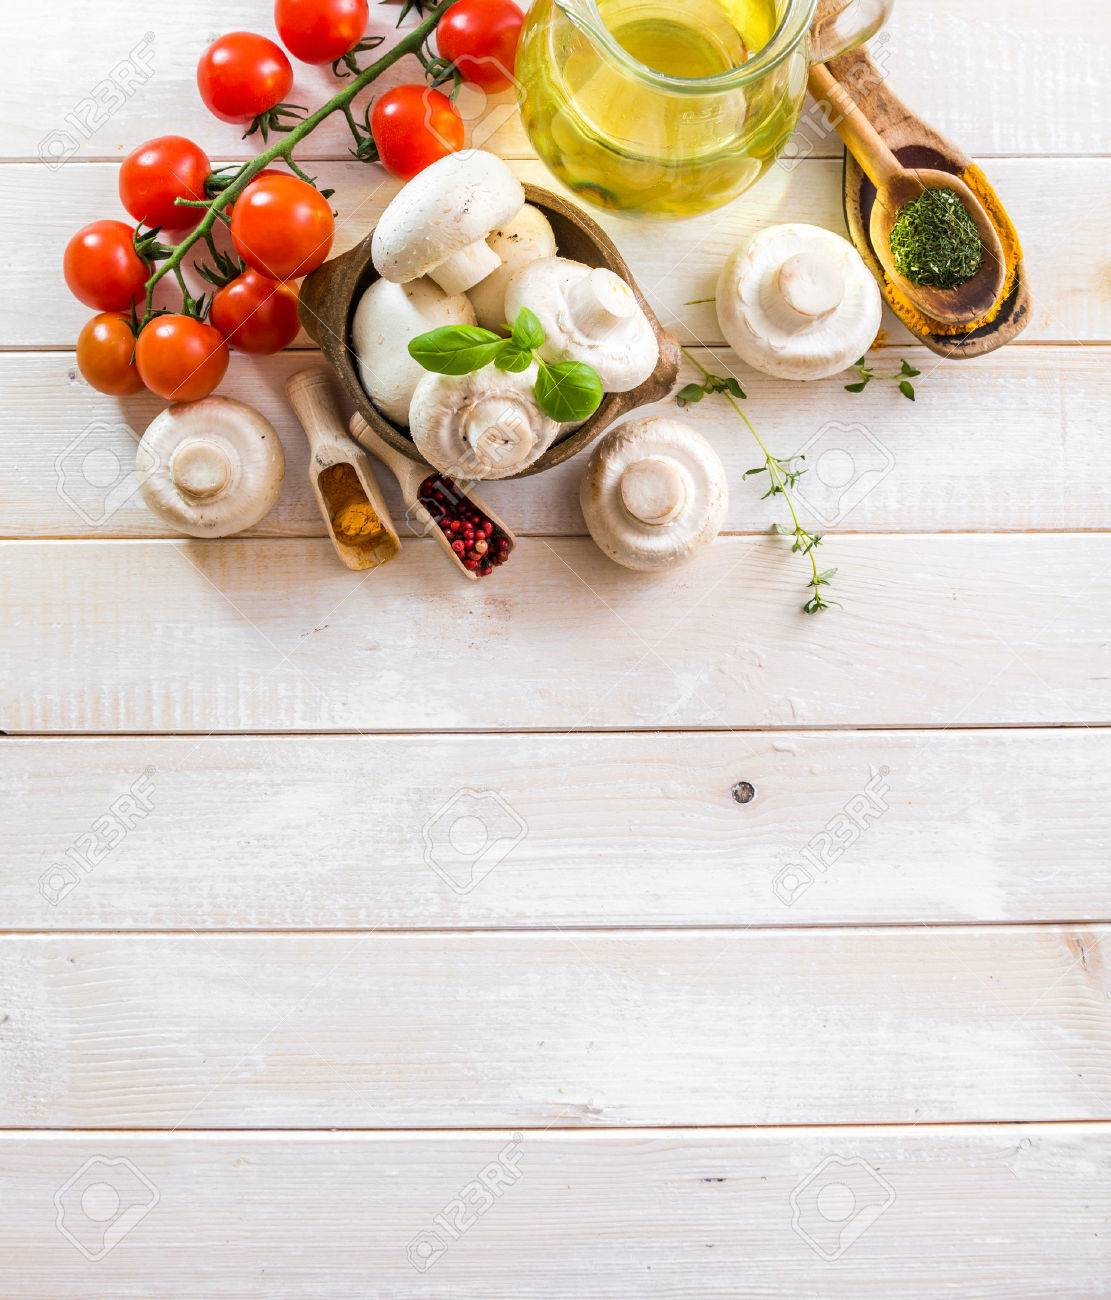 food ingredients for cooking vegetarian food on a wooden background - 39407428